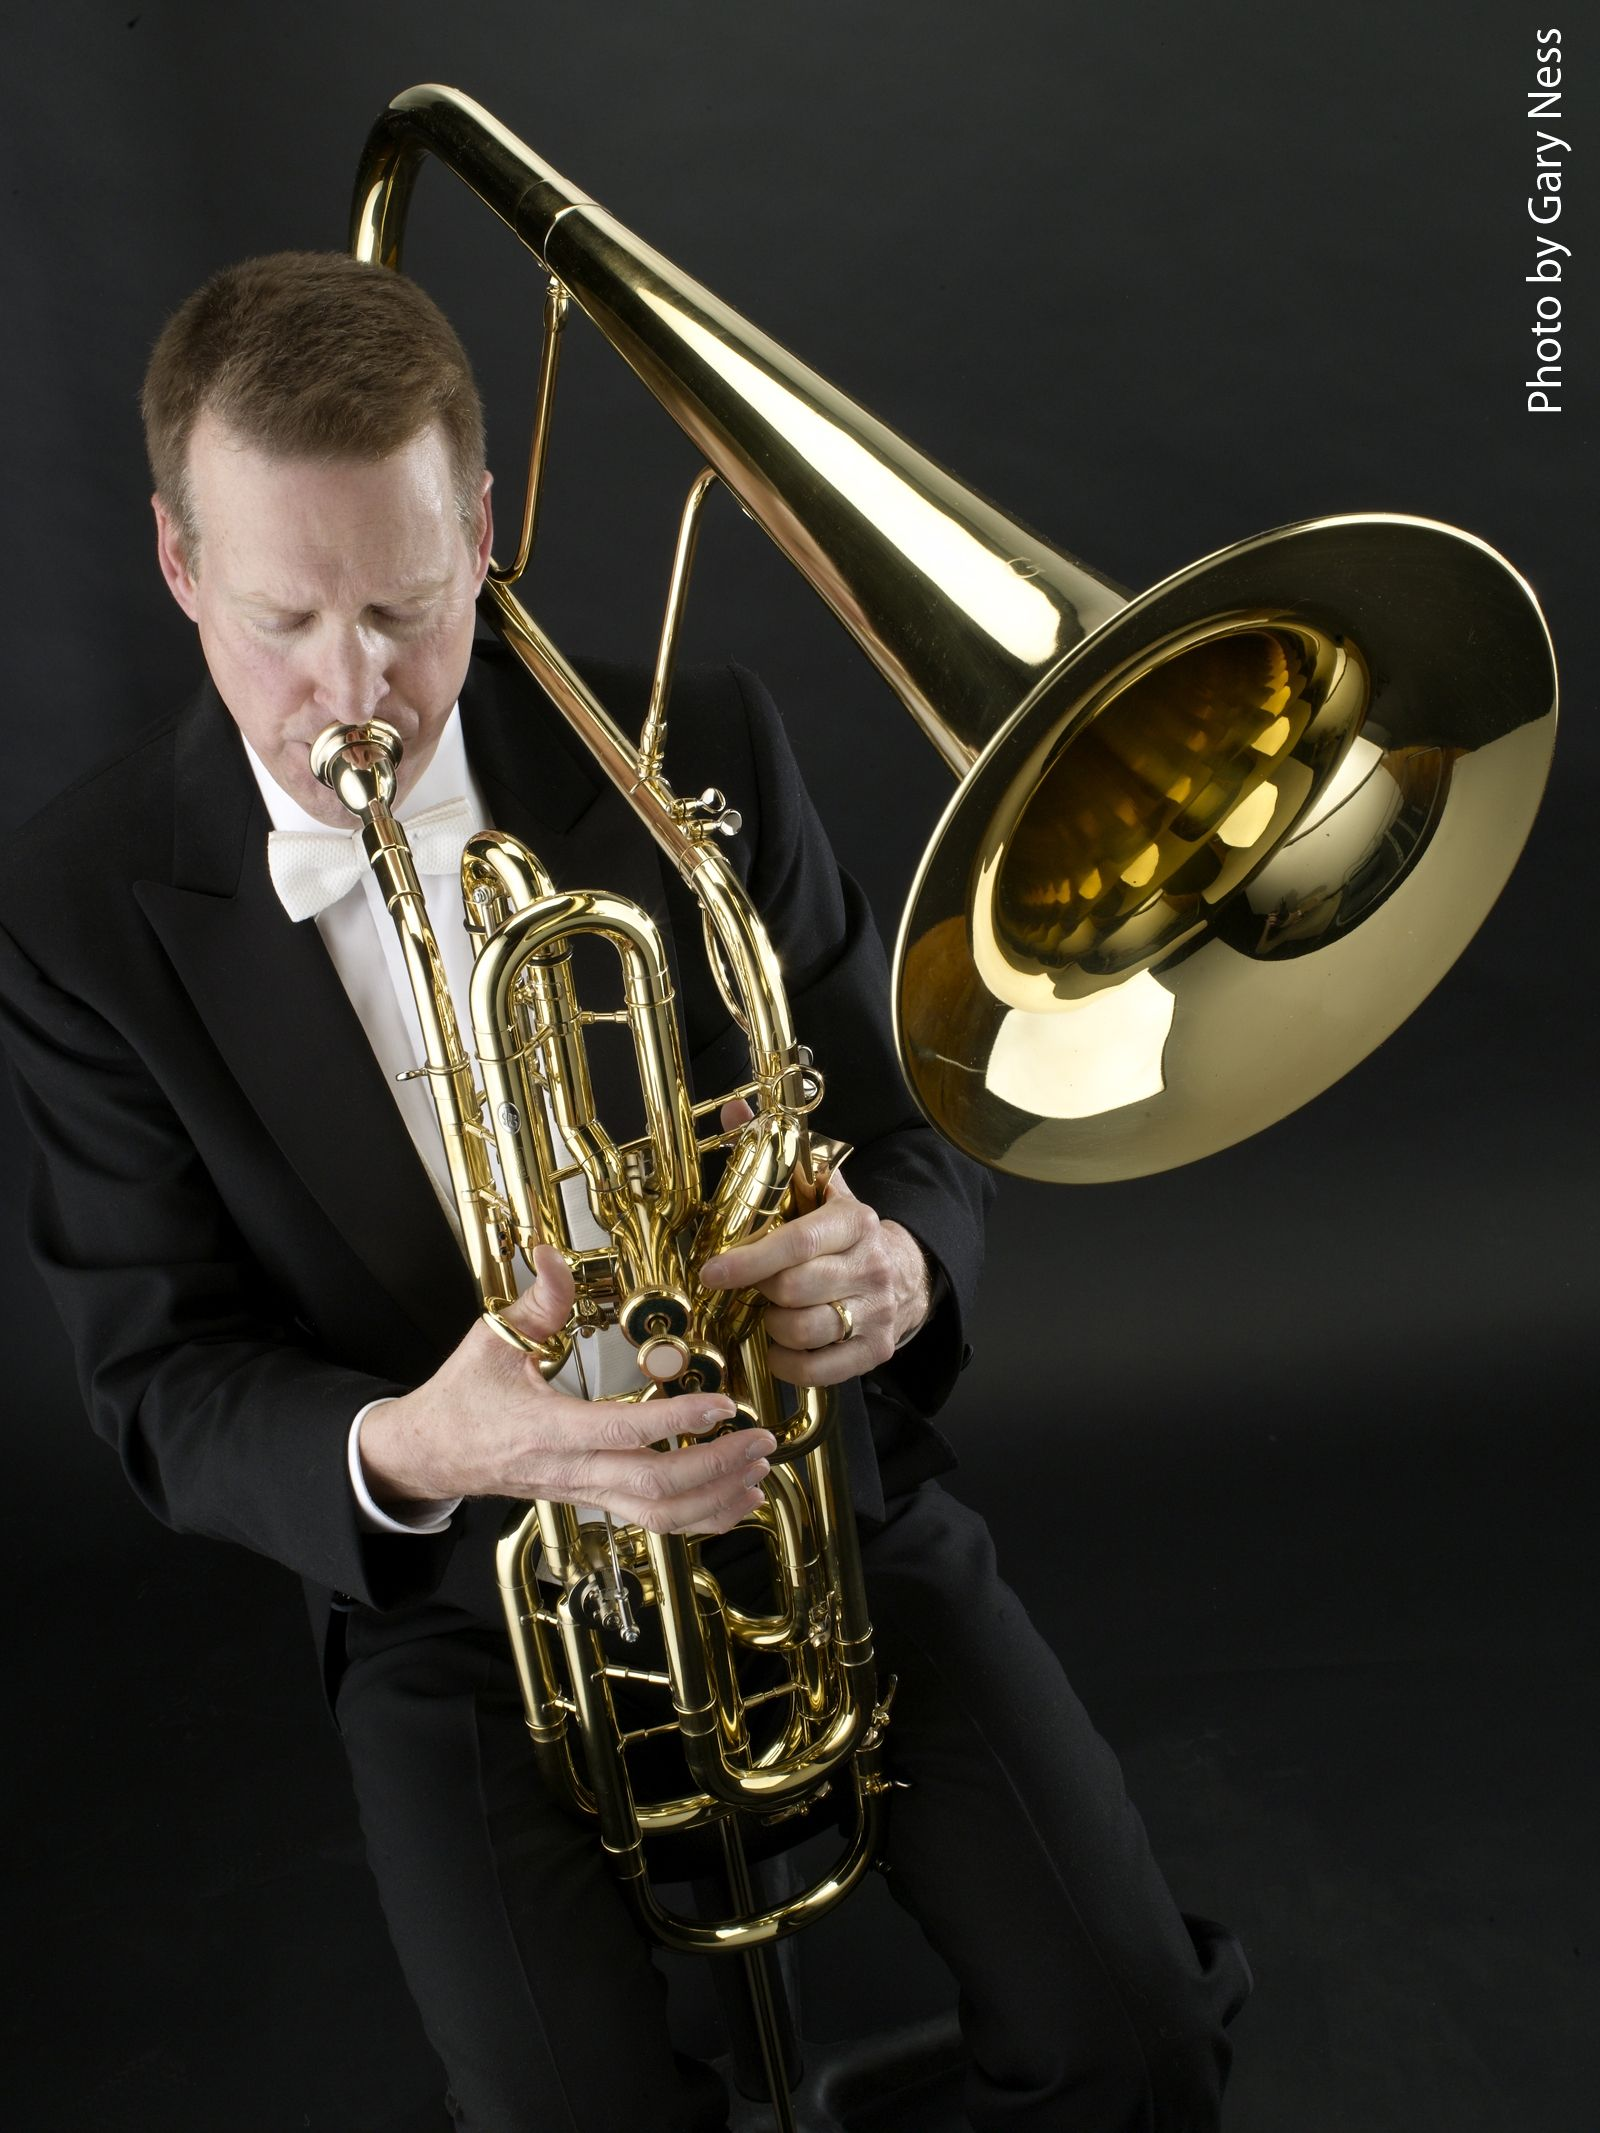 Cimbasso -- valve contrabass trombone Whoa! I can't even